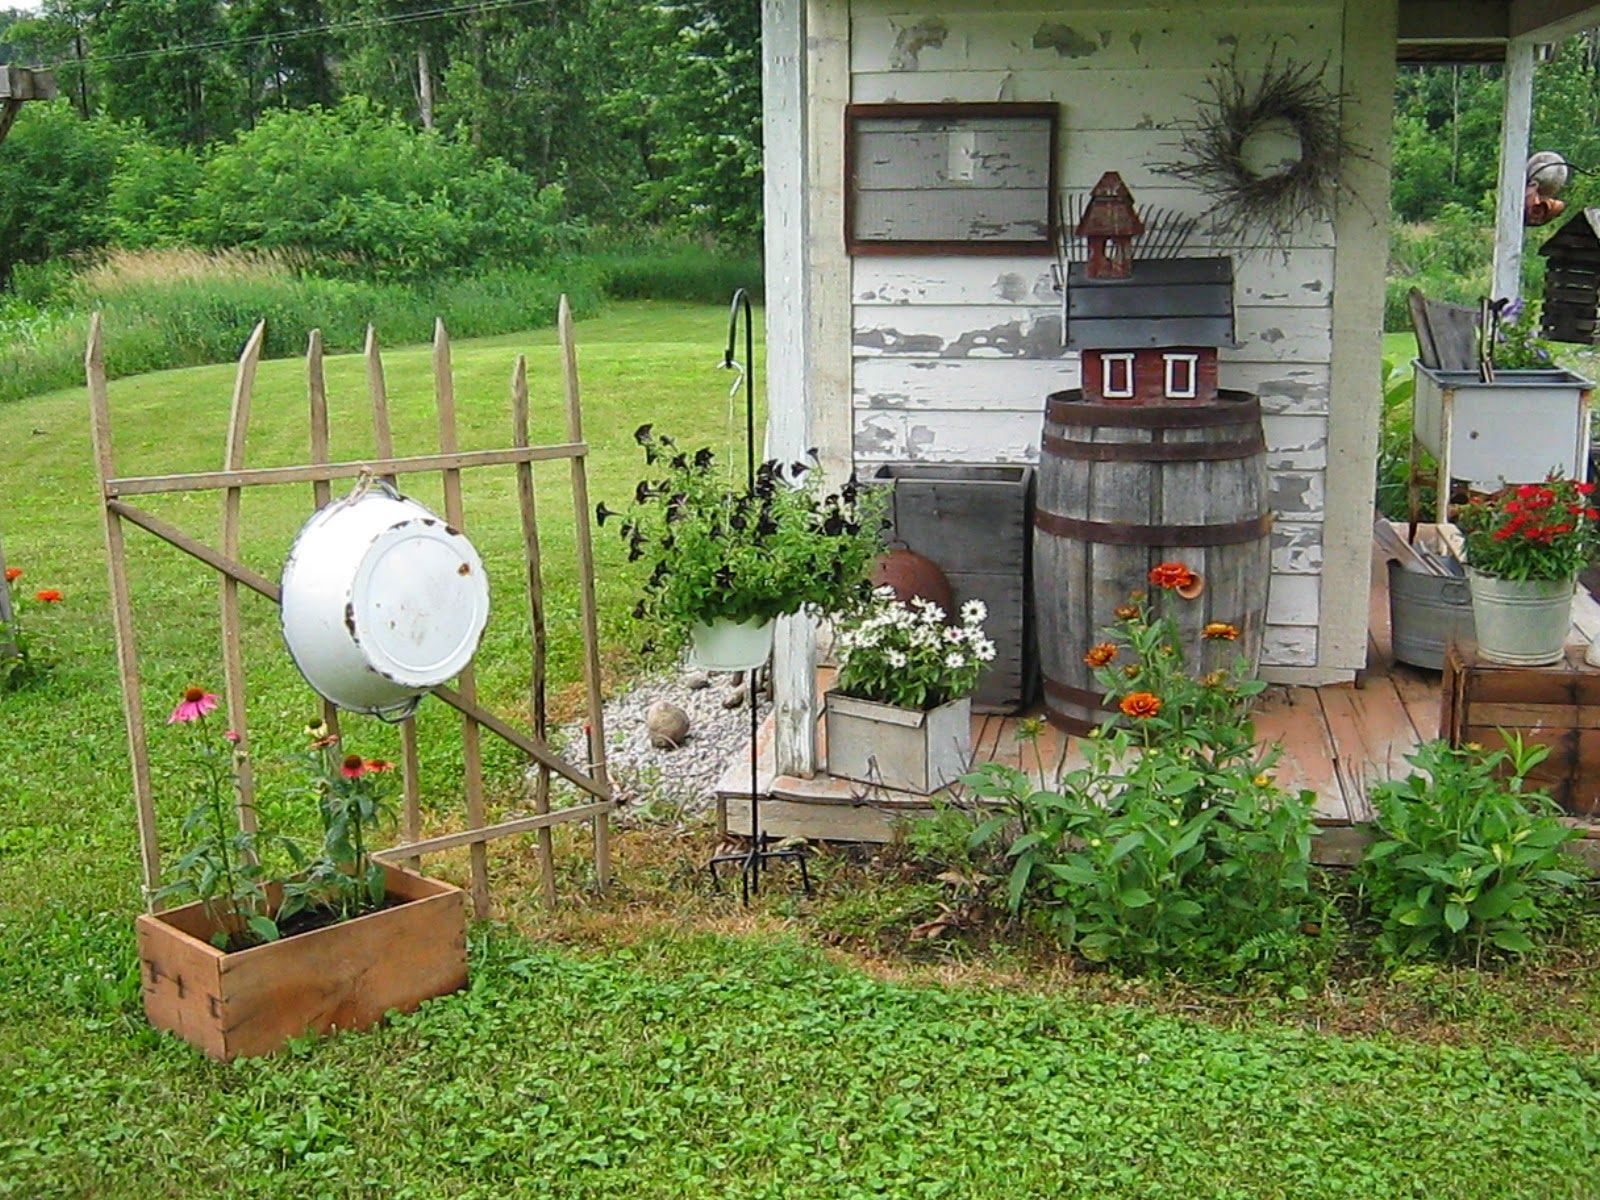 Primitive passion decorating garden shed expansion for Rustic outdoor decorating